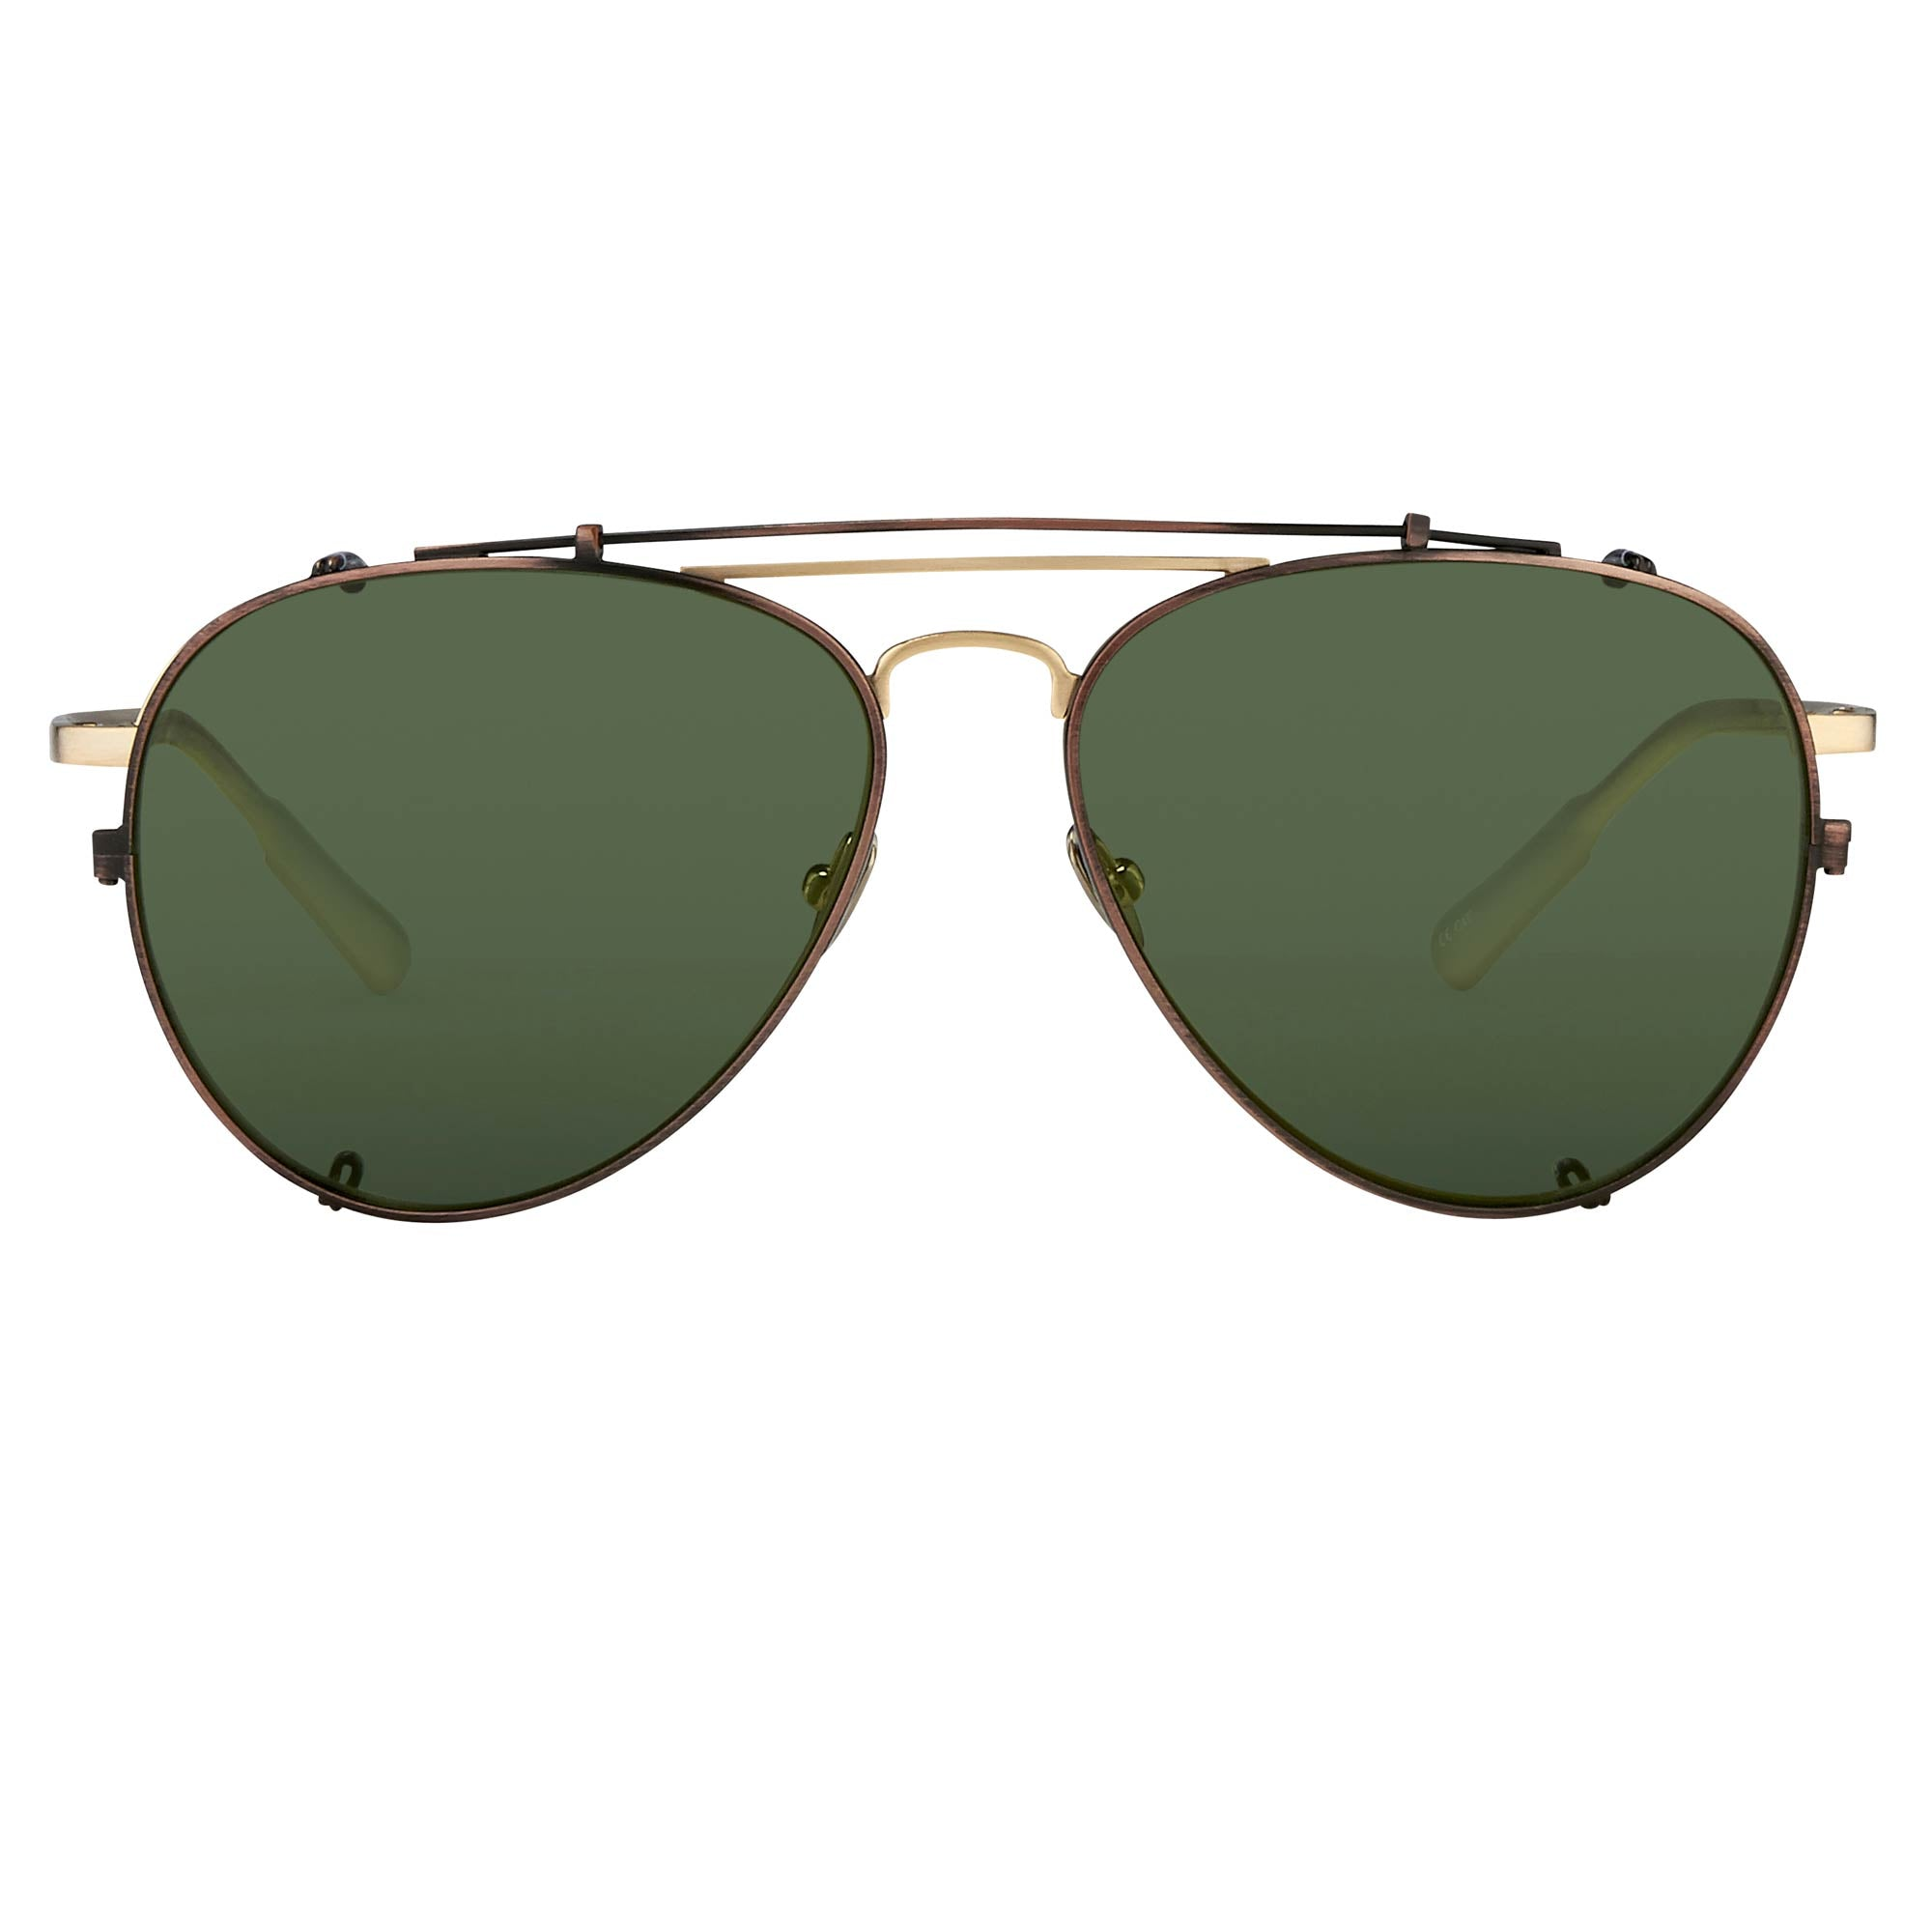 Kris Van Assche Sunglasses Green - Watches & Crystals